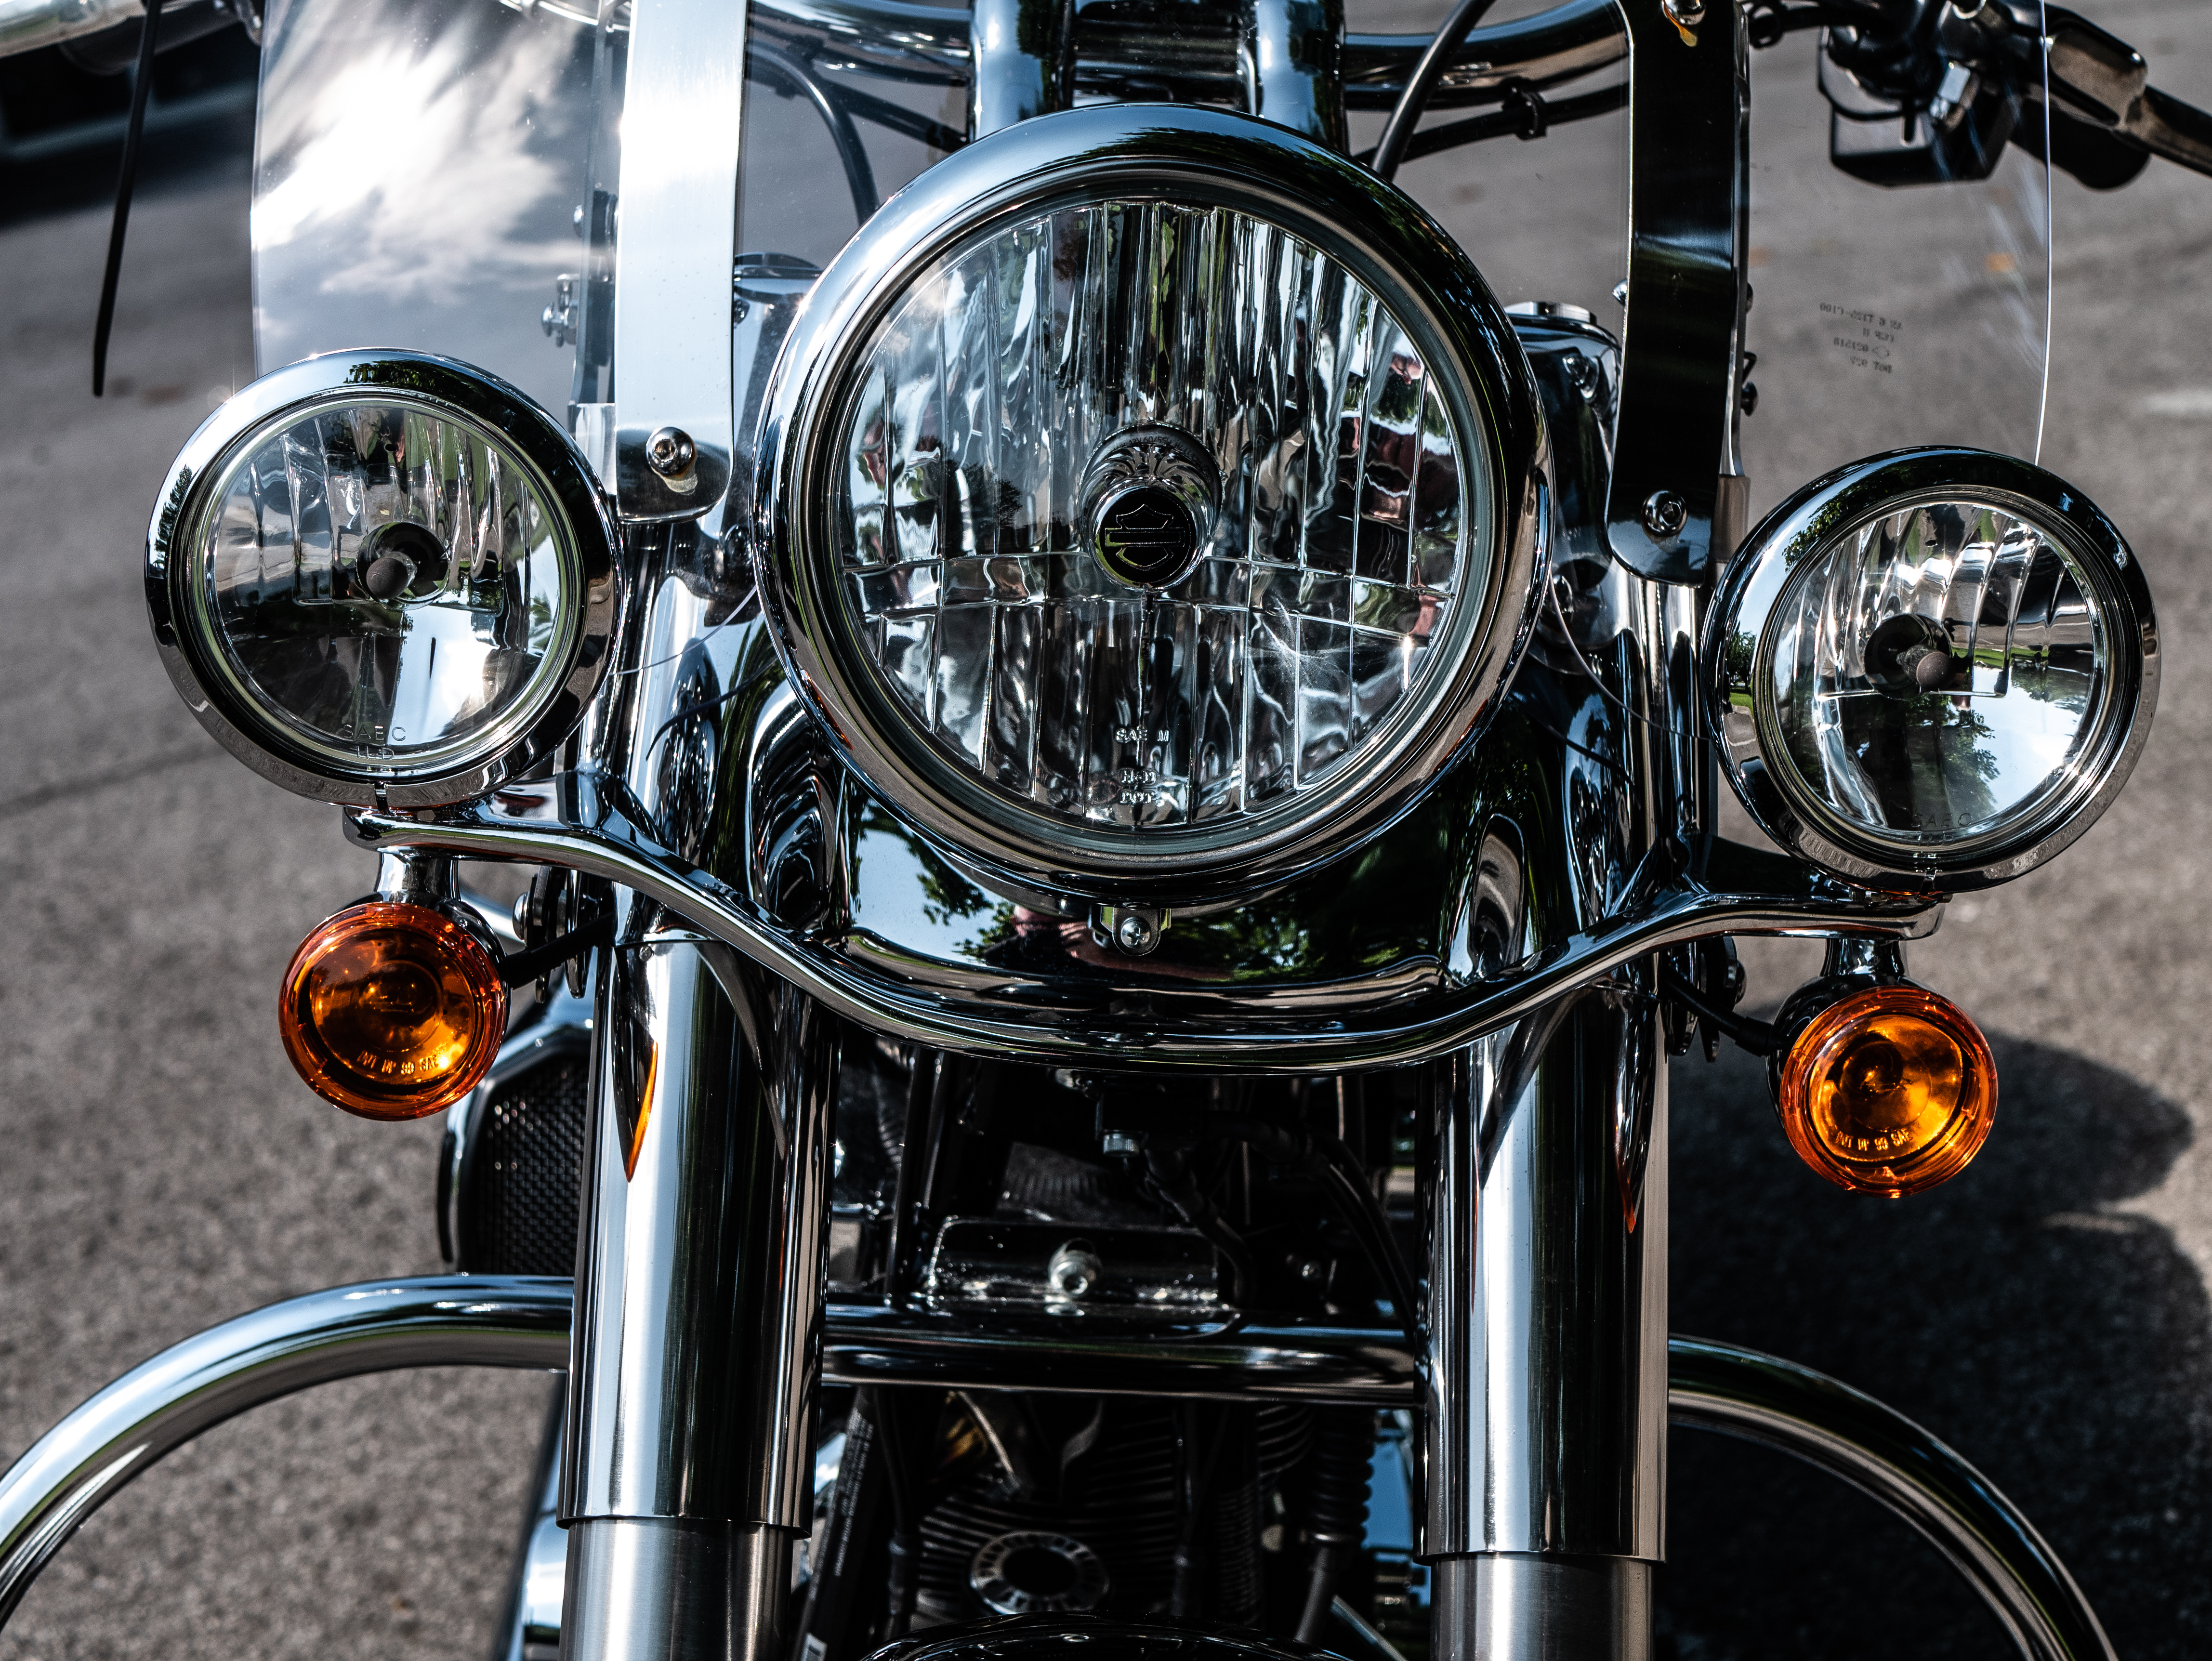 Pre-Owned 2017 Harley-Davidson Deluxe